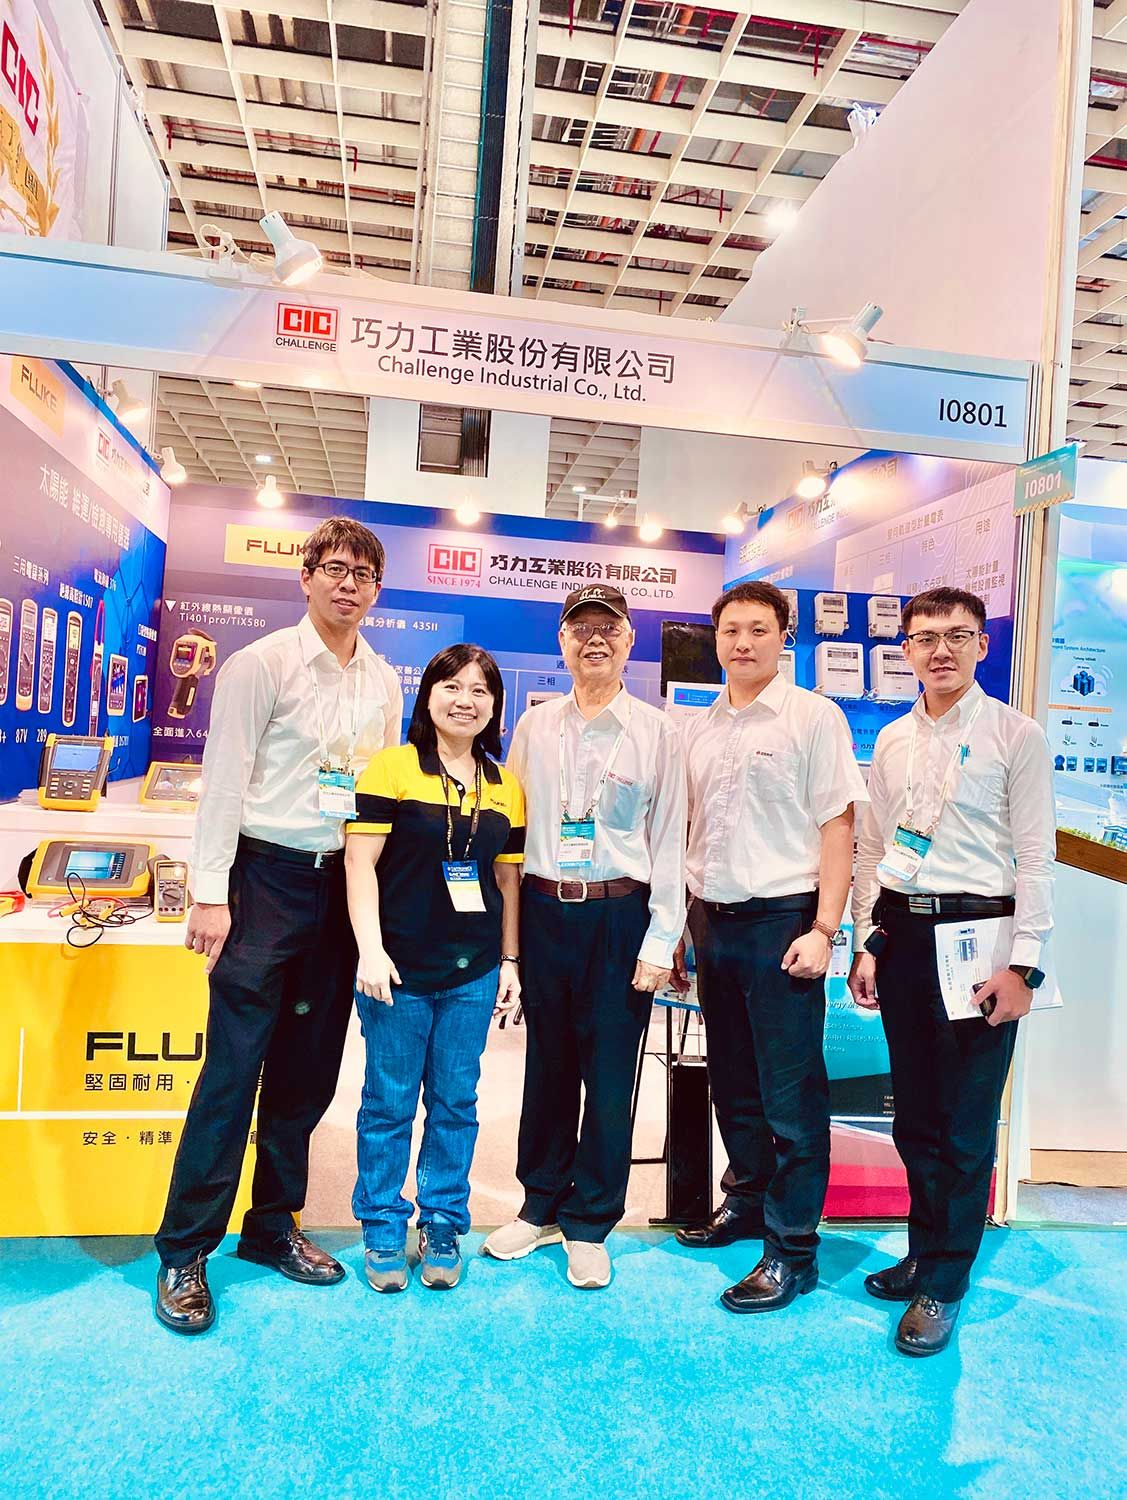 CIC collaborating with FLUKE at Exhibit